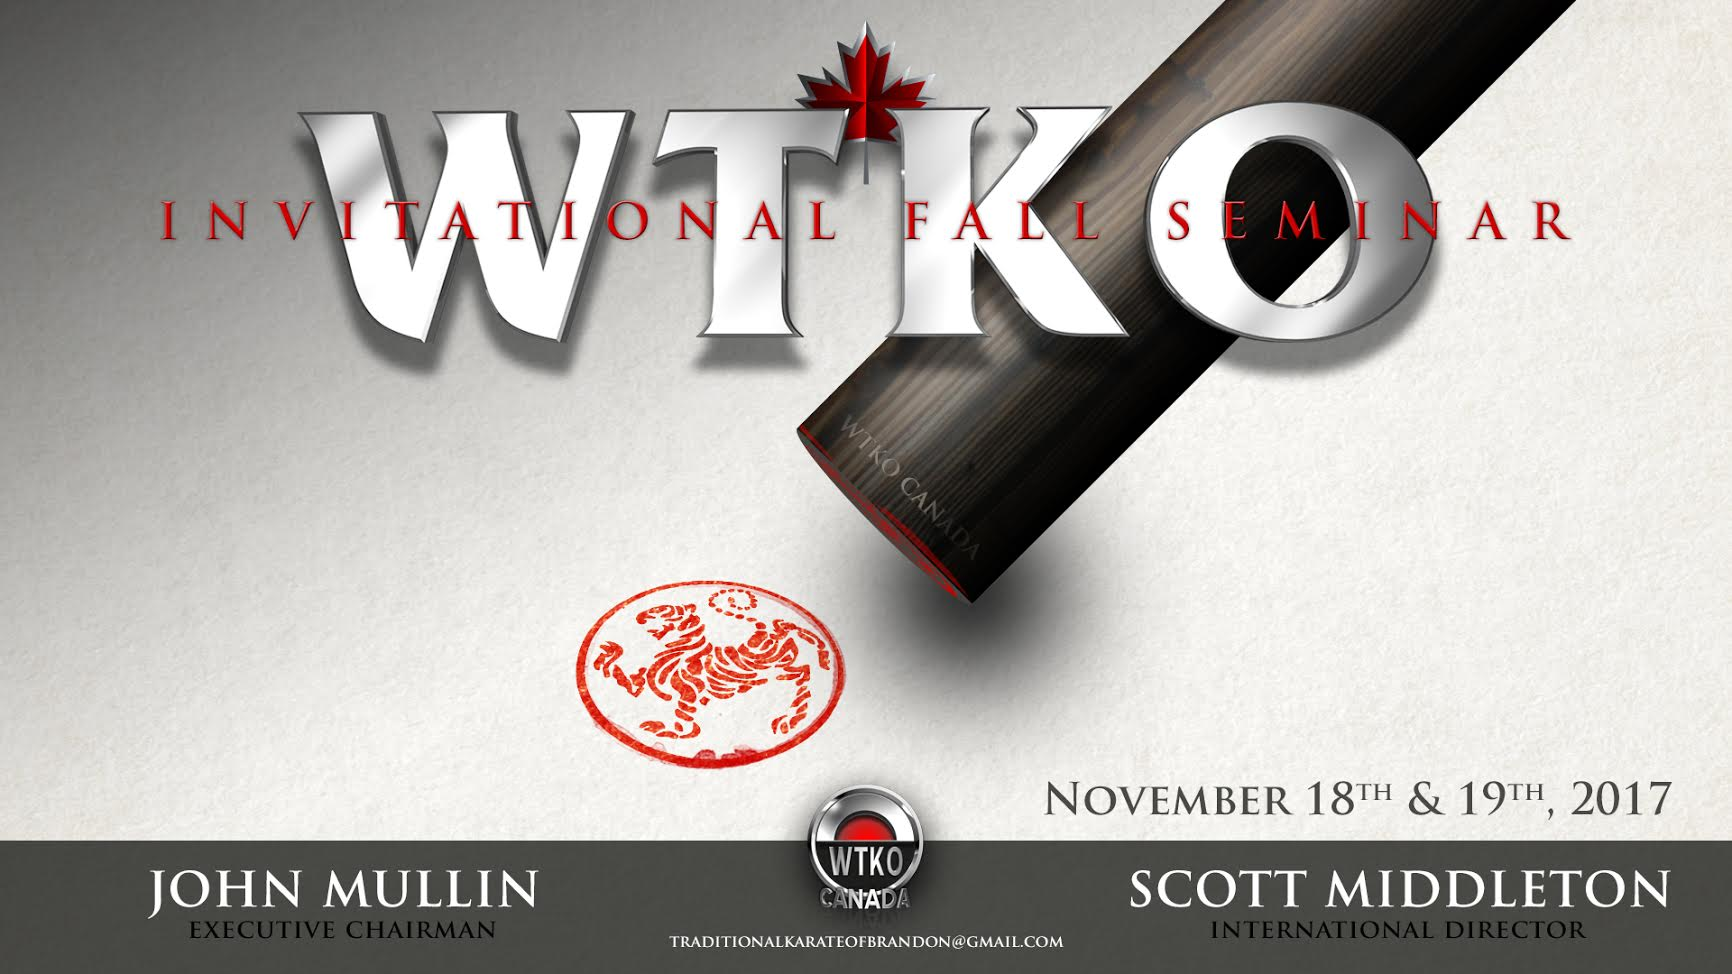 2017 WTKO Canada Invitational Fall Seminar